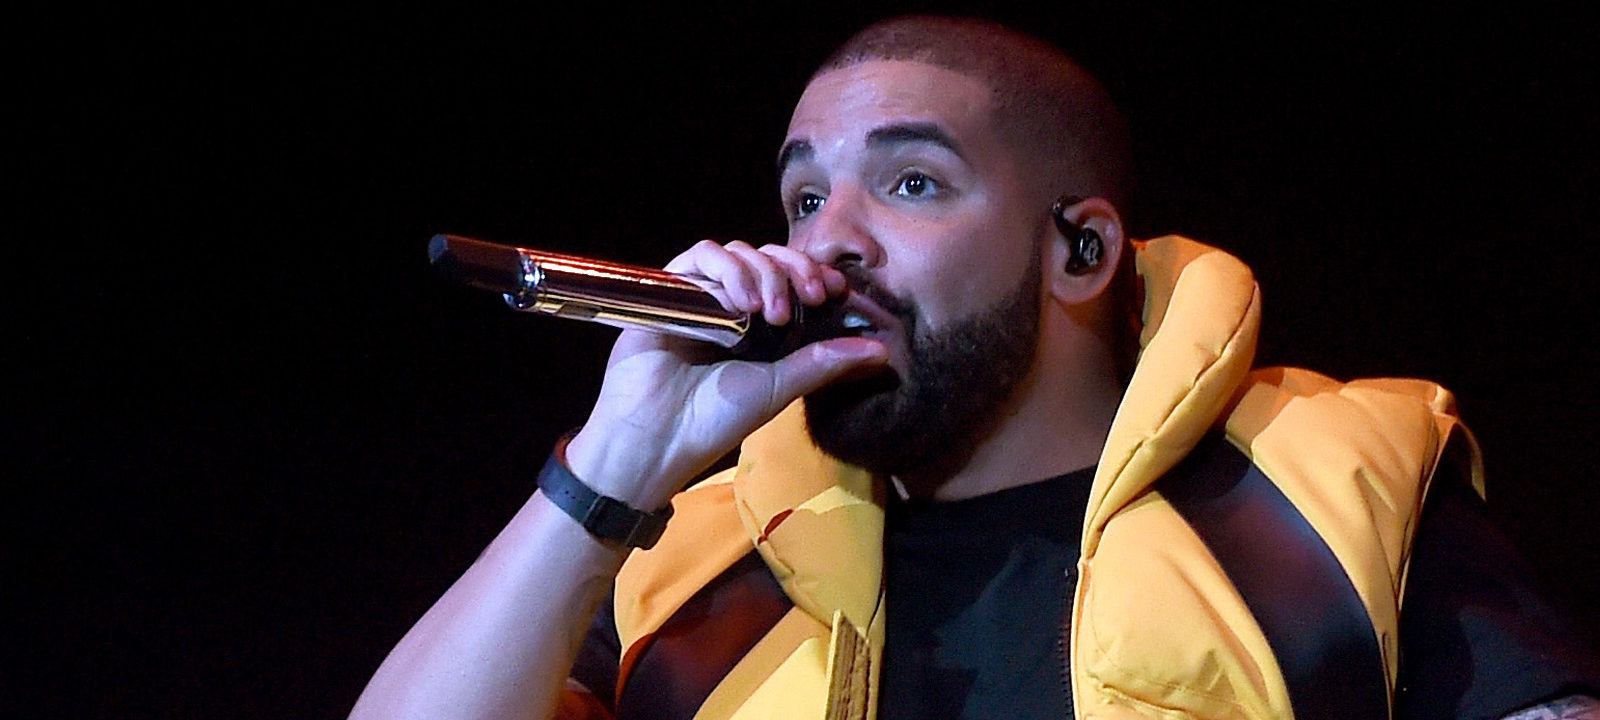 Drake performs on the Coachella Stage during day 2 of the Coachella Valley Music And Arts Festival (Weekend 1) at the Empire Polo Club on April 15, 2017 in Indio, California.